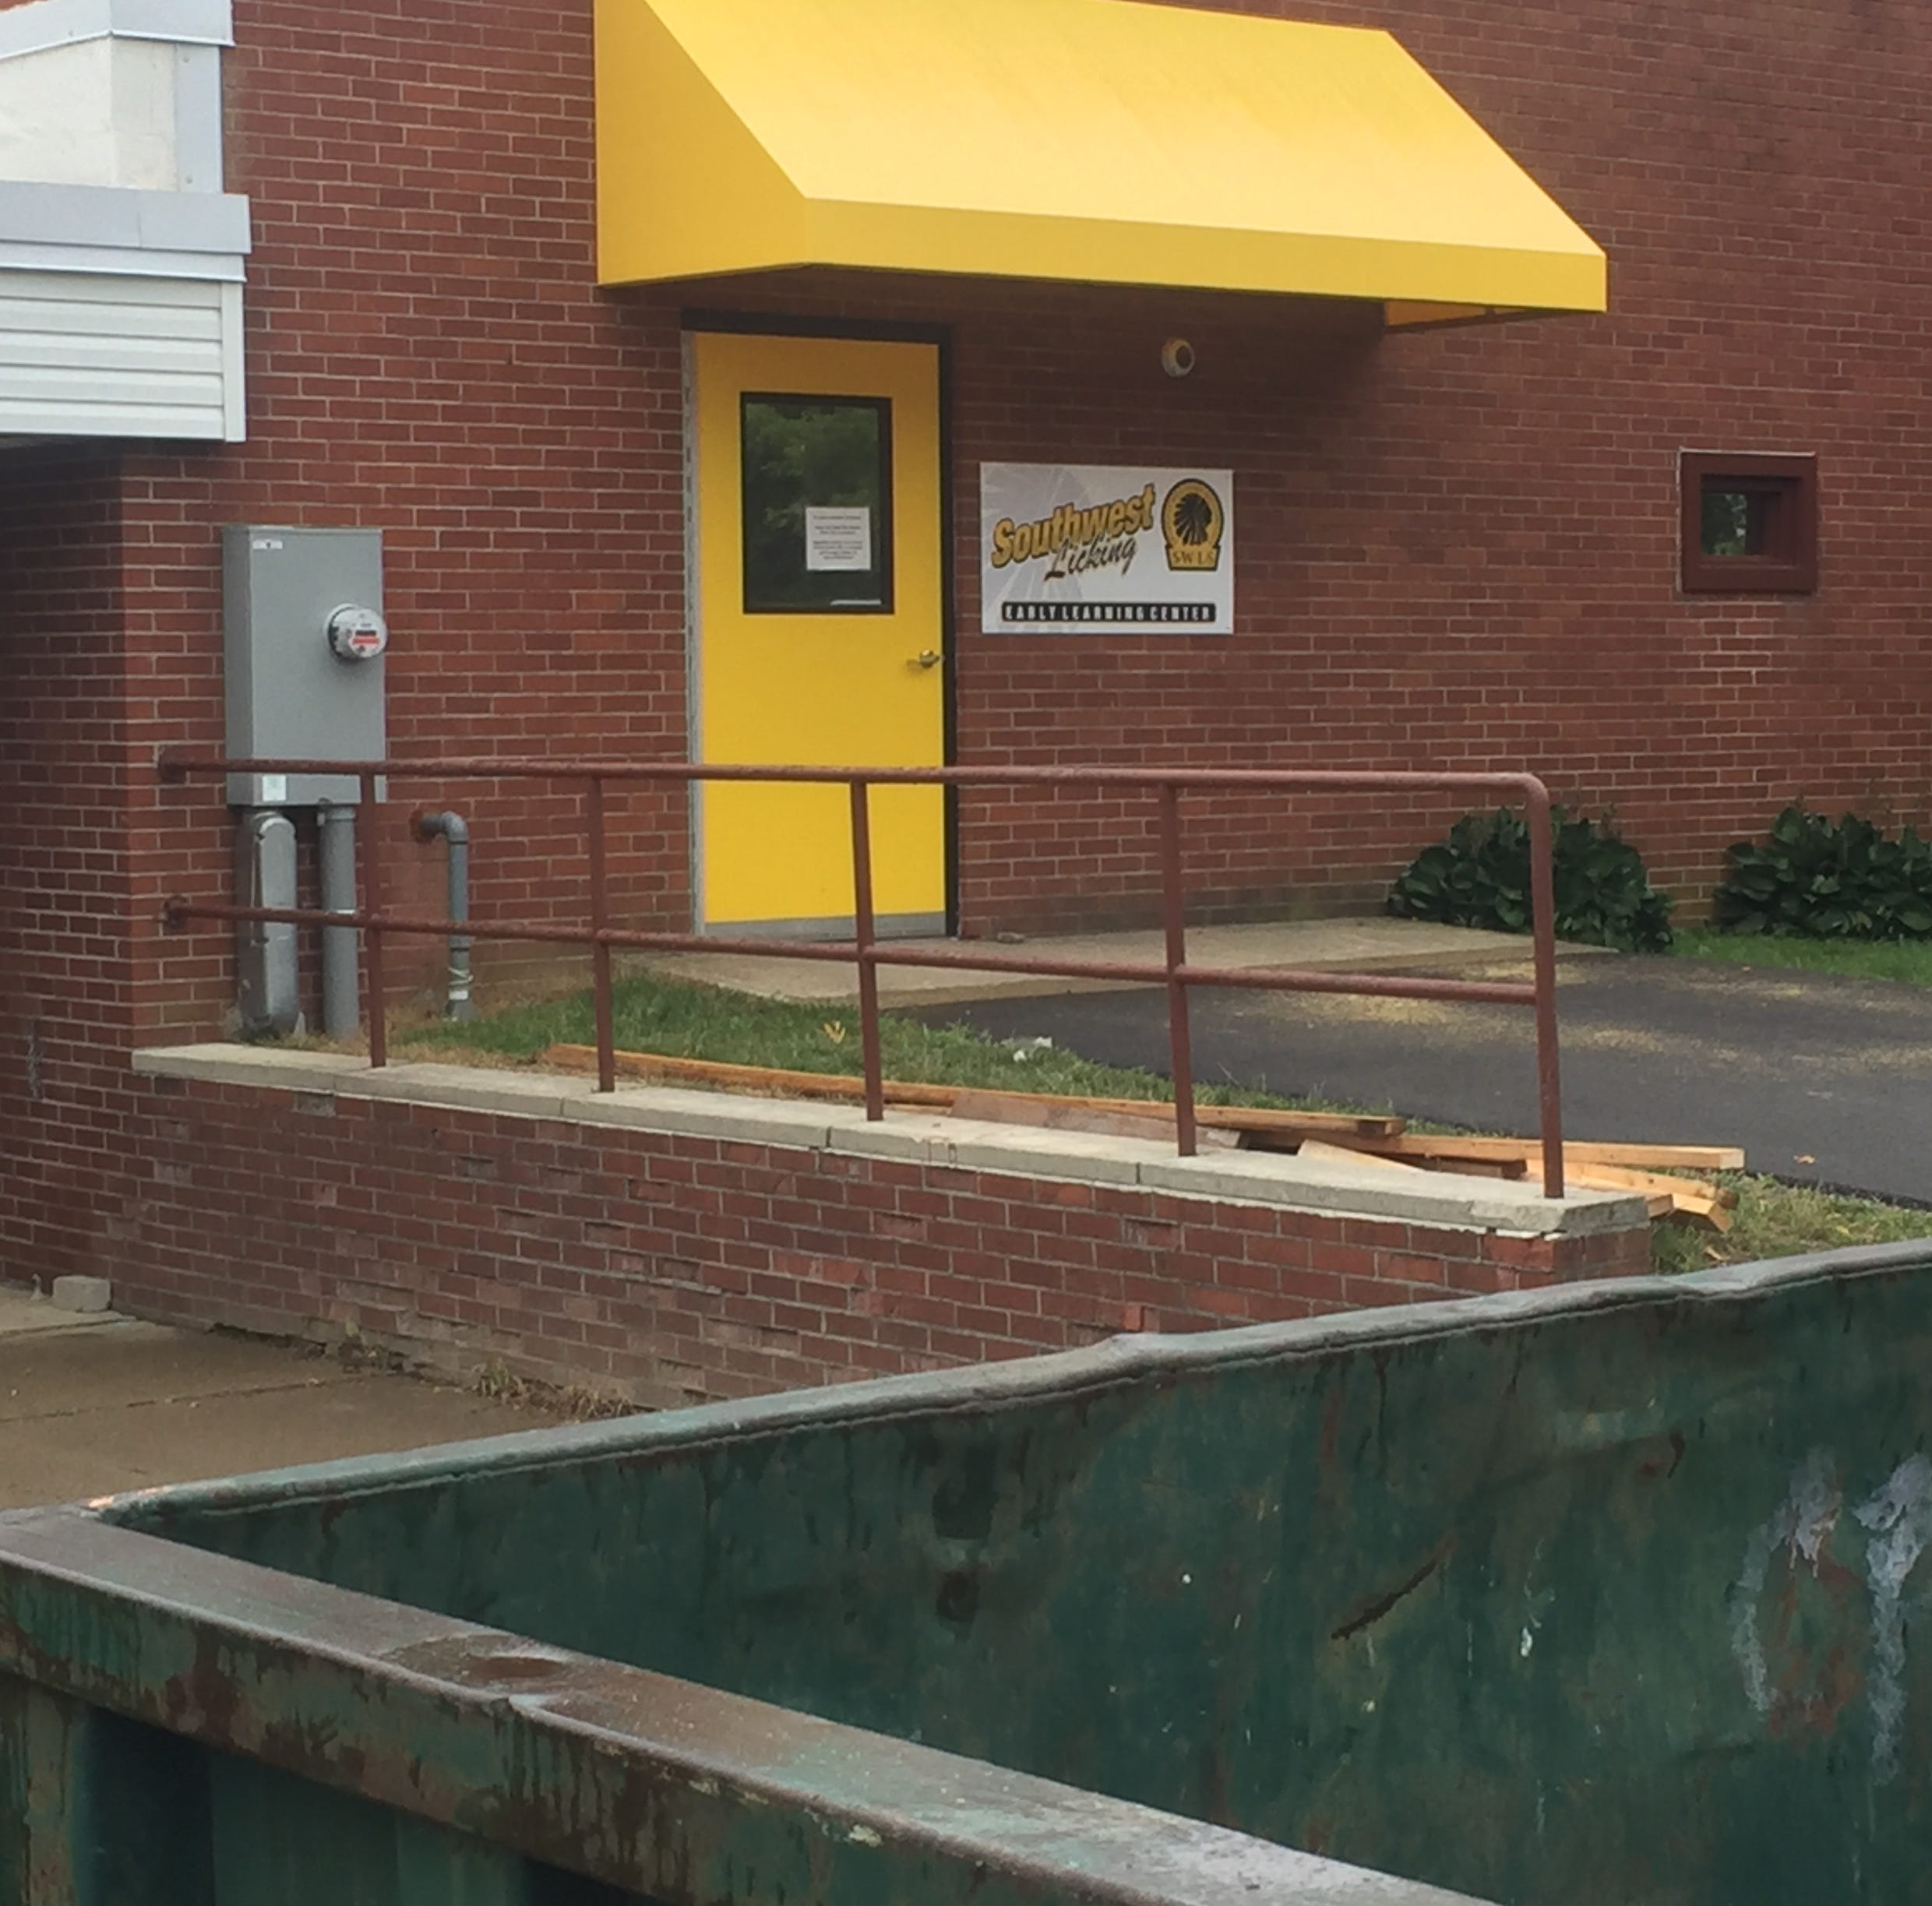 An abatement program was recently completed at the Southwest Licking Early Learning Center, one of many projects completed in preparation for the coming school year.